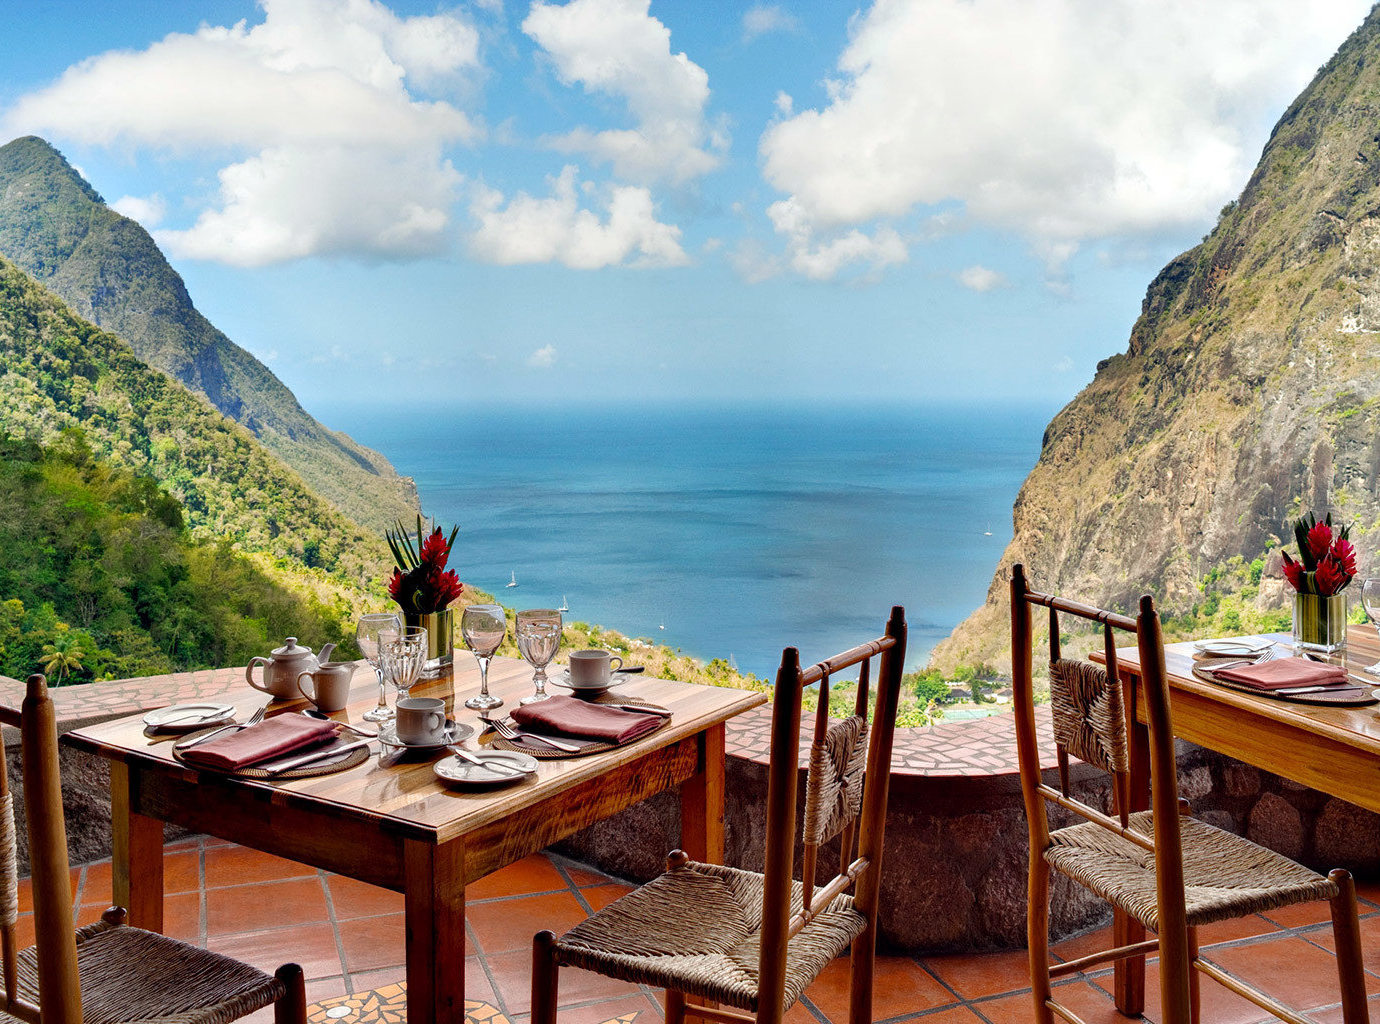 Outdoor seating overlooking beautiful blue water and pointy mountains at Ladera Resort